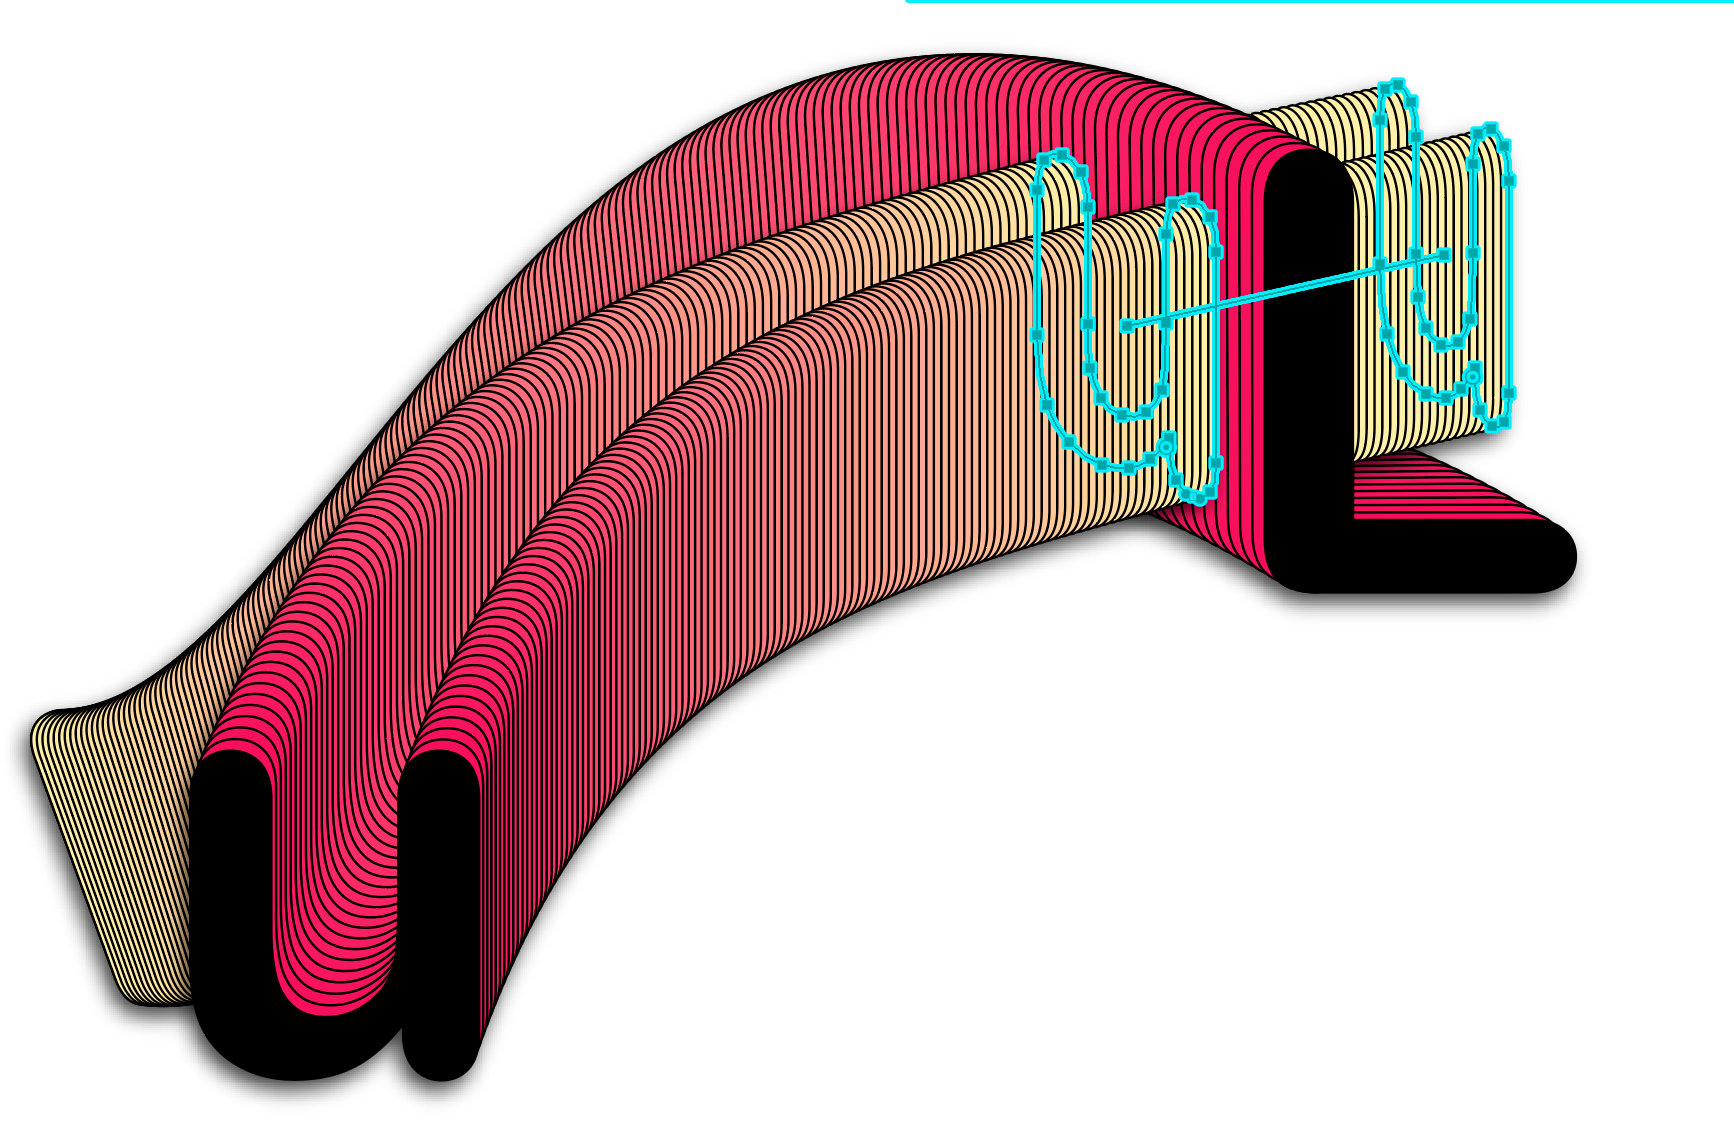 An extra object blend allows the u's extrusion to pass through the L's